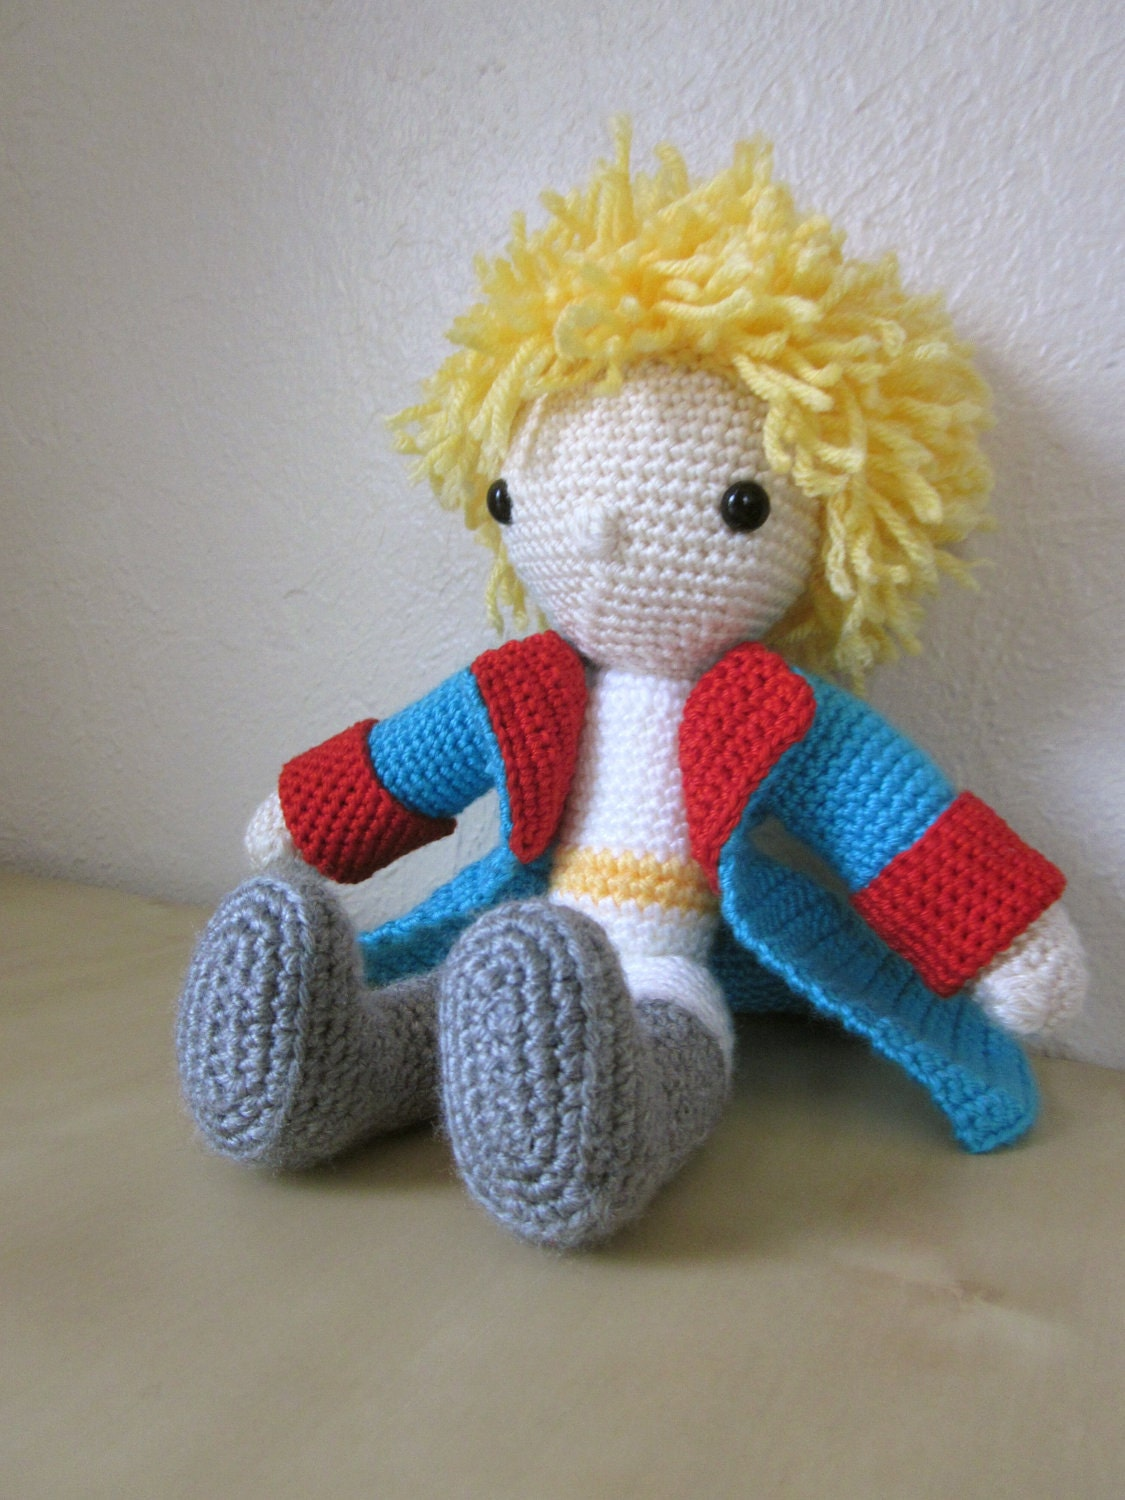 Little Prince Amigurumi Free Pattern : wundertime: Snuggle Your Little Prince